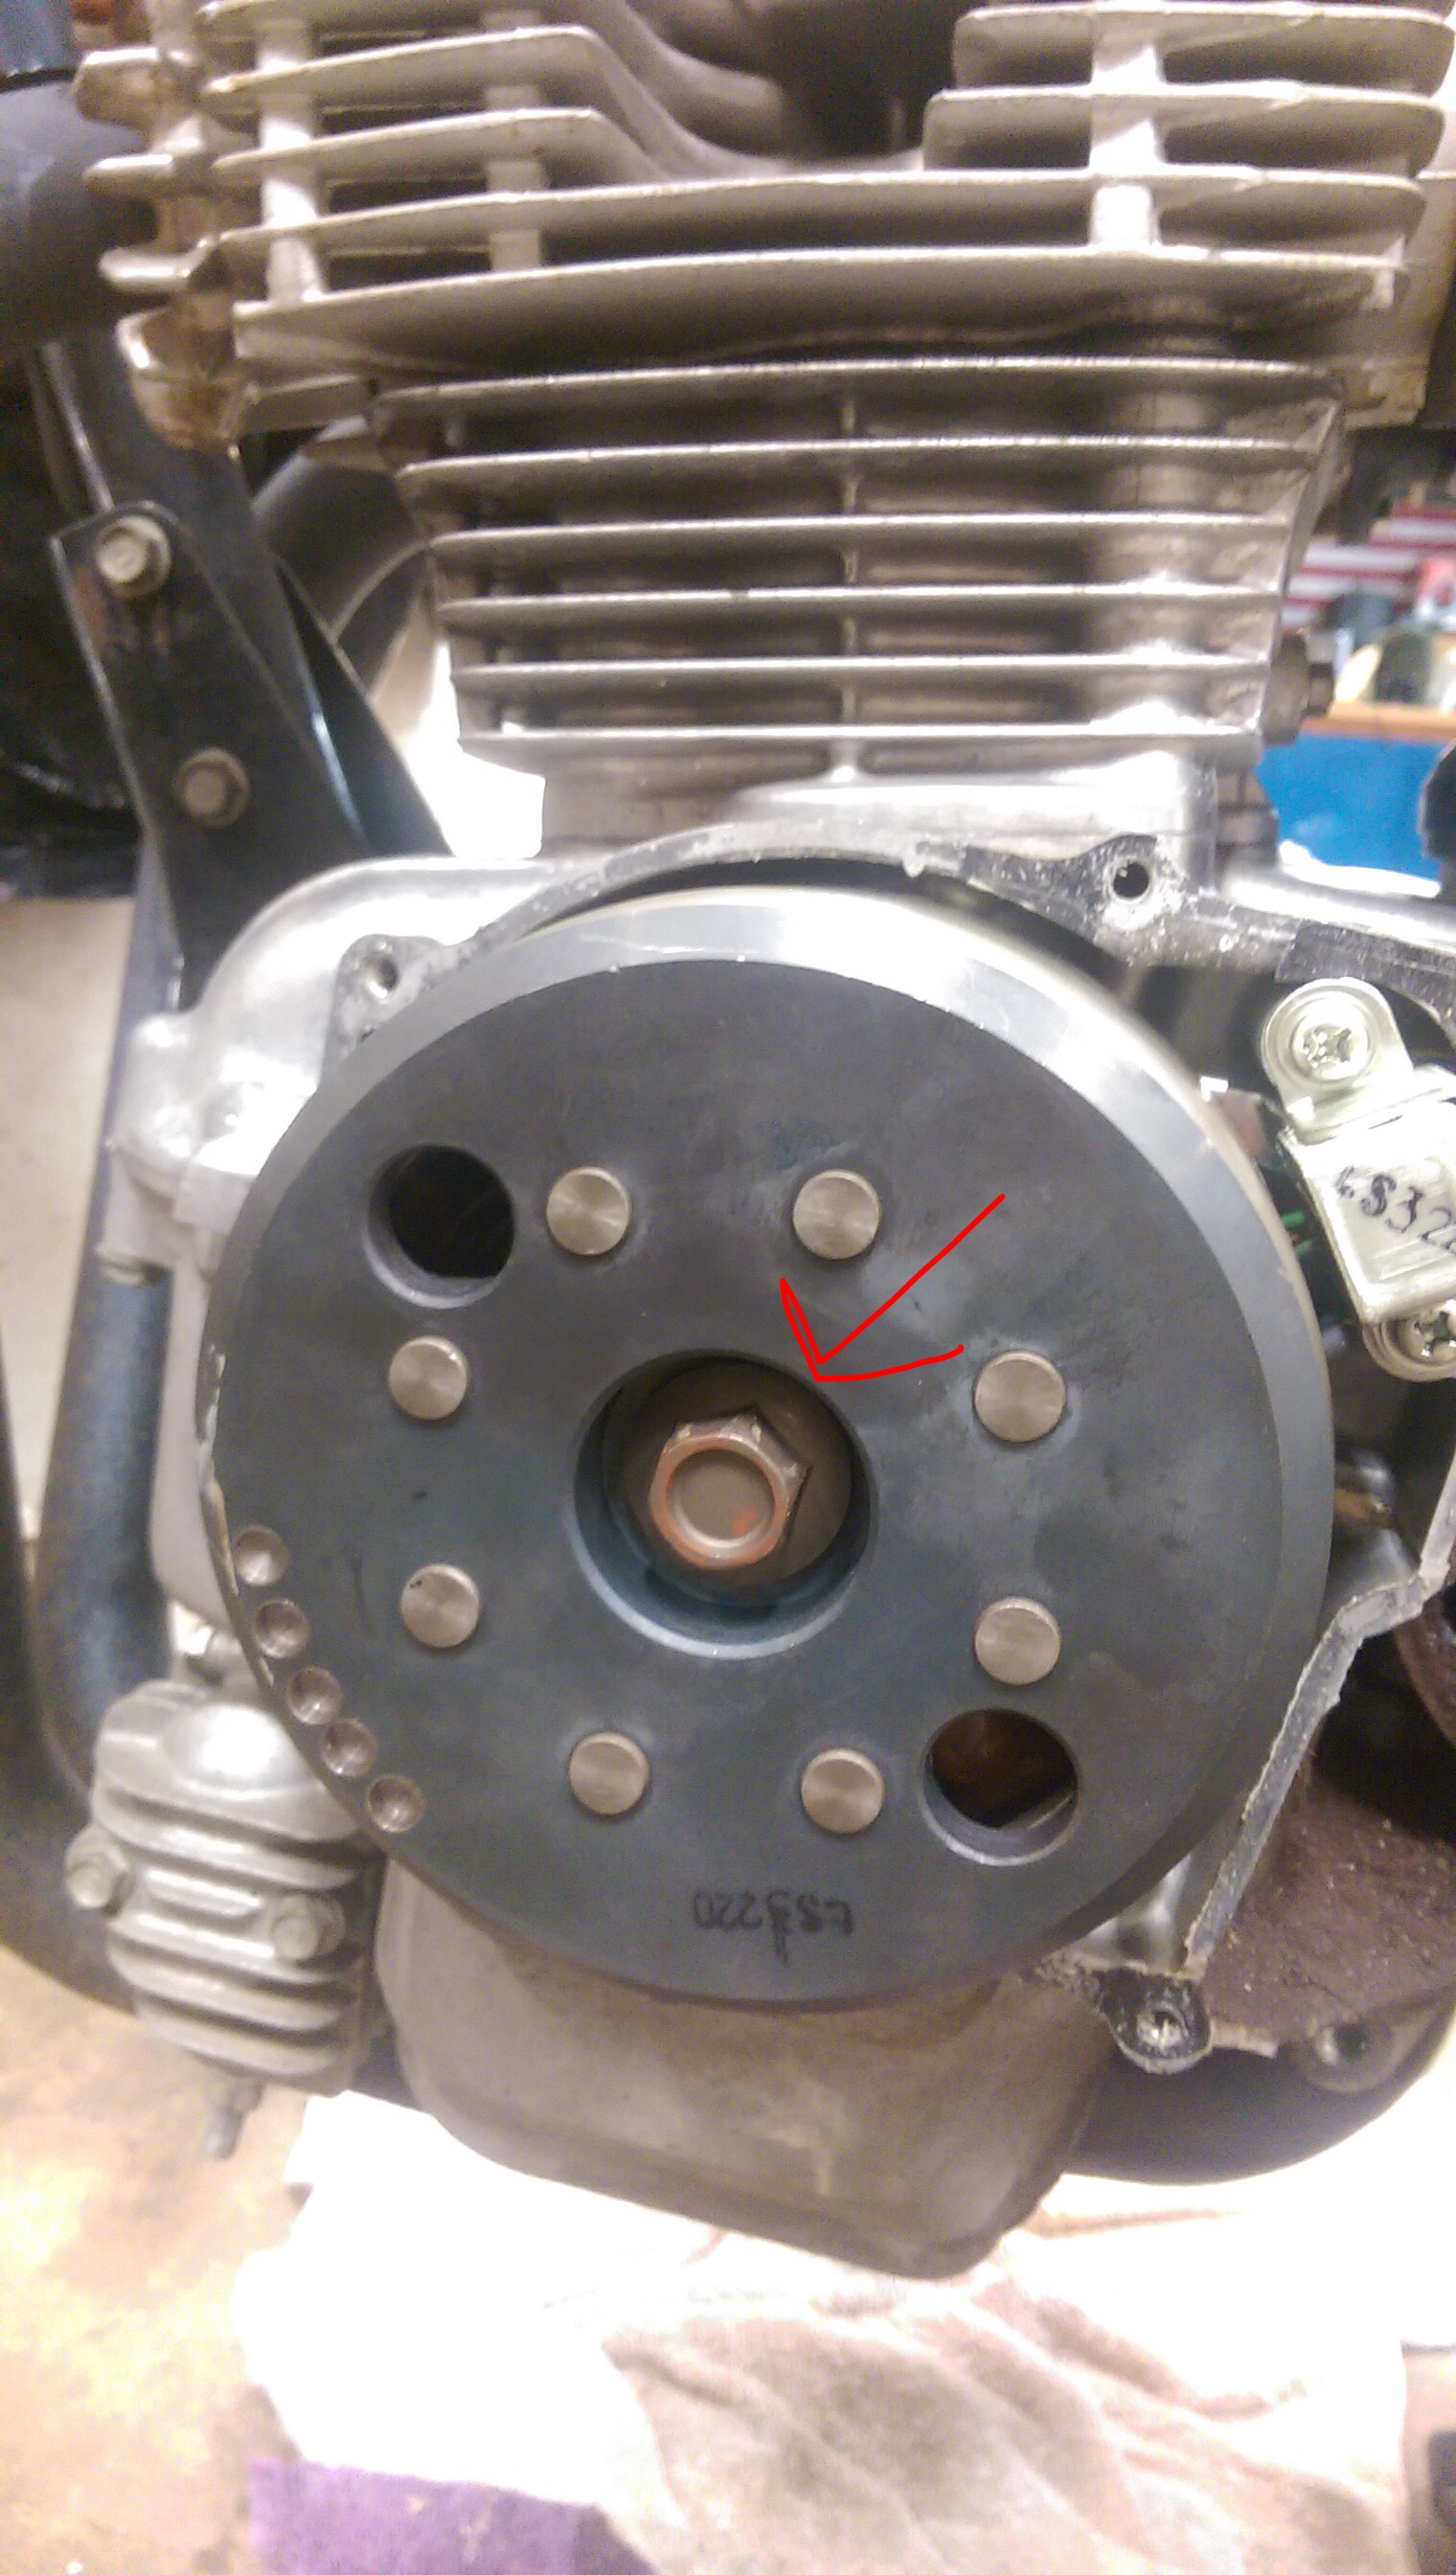 Removing cm400a Stator For First Time?